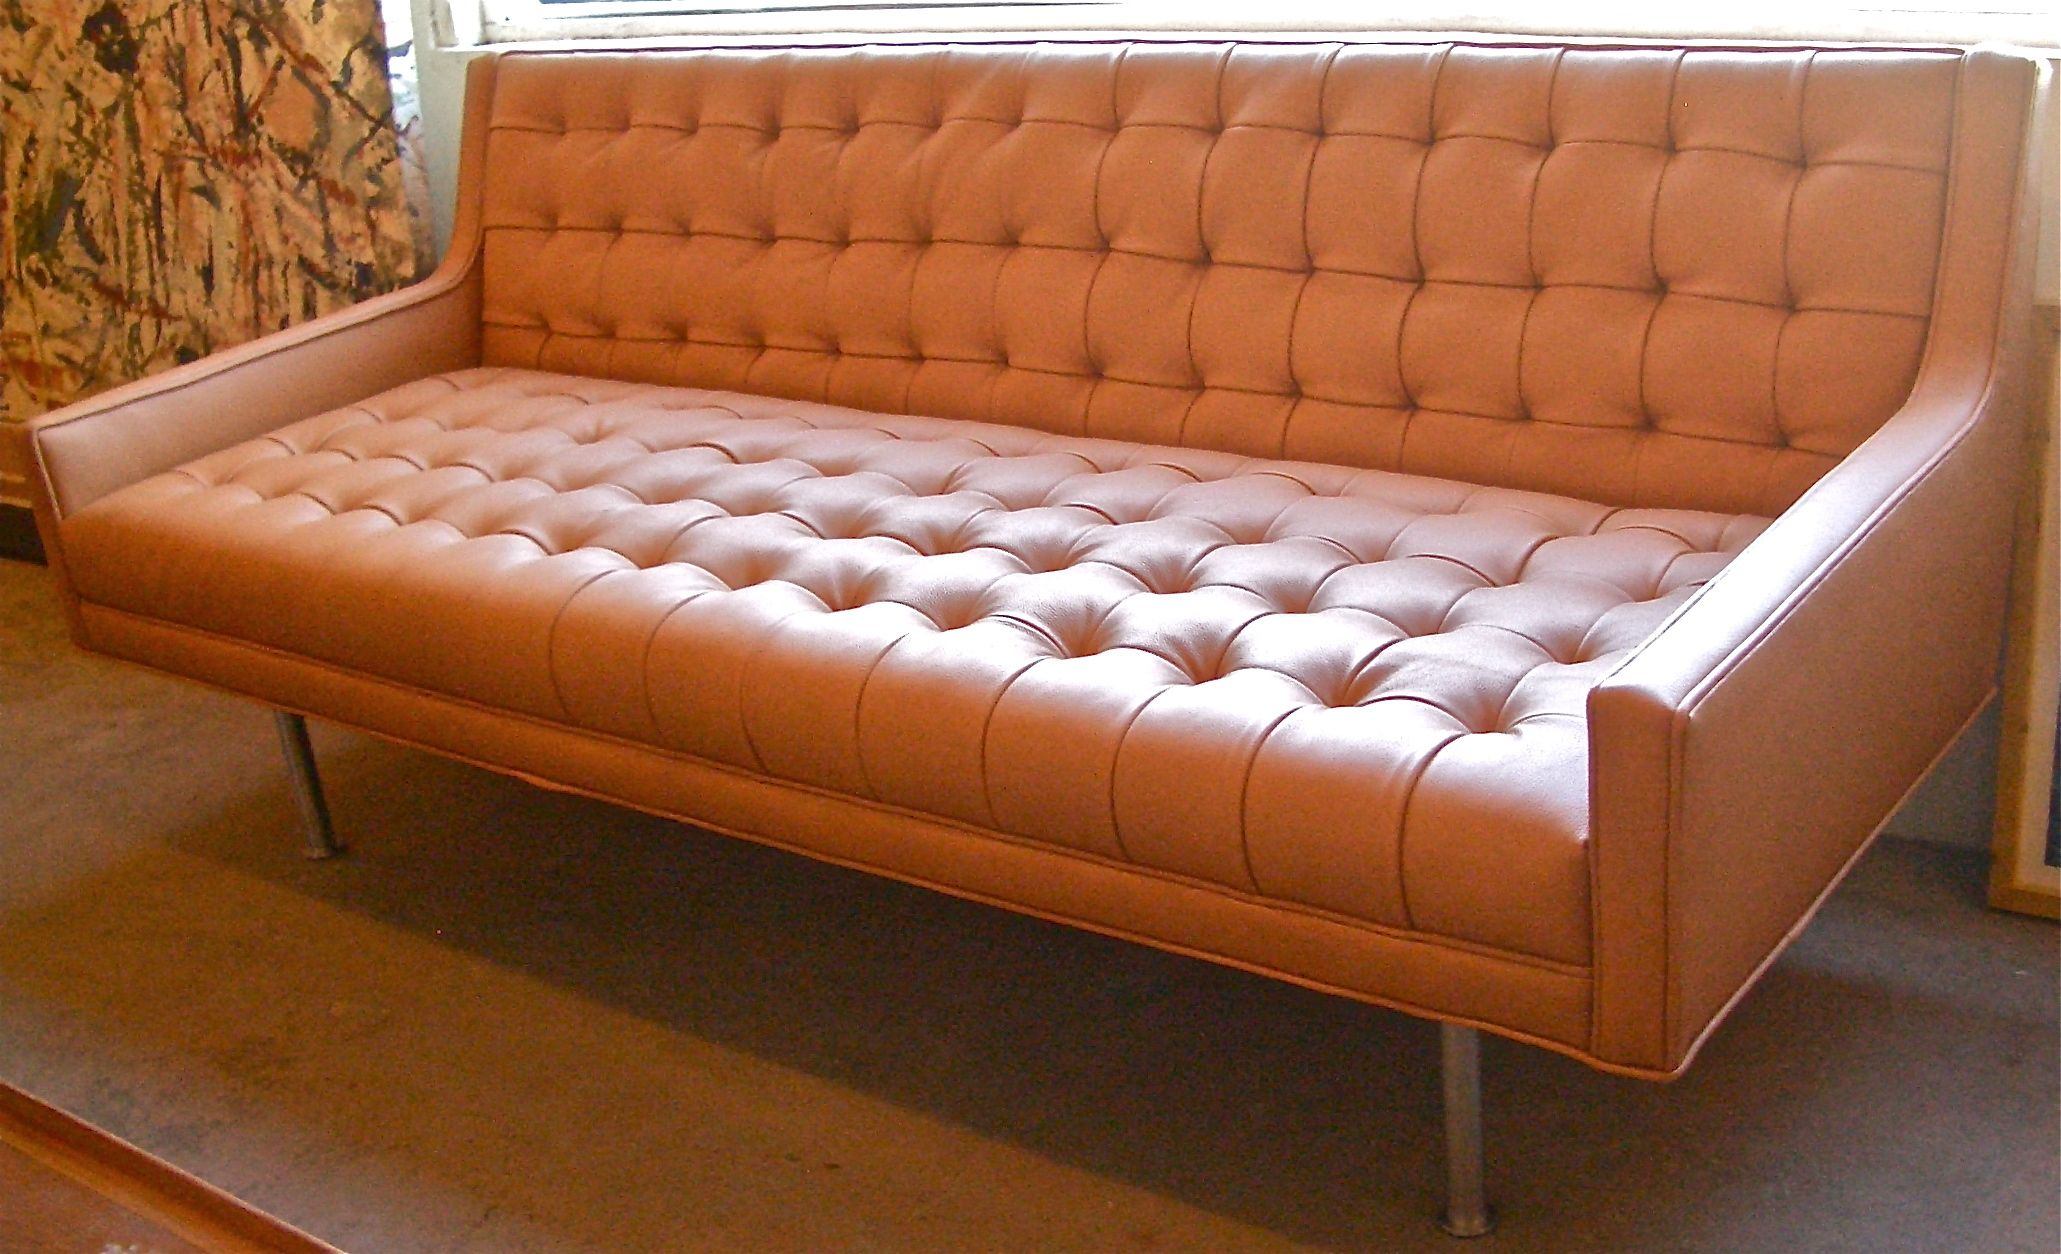 Peachy Affordable Mid Century Modern Sofas House Leather Sofa Pabps2019 Chair Design Images Pabps2019Com